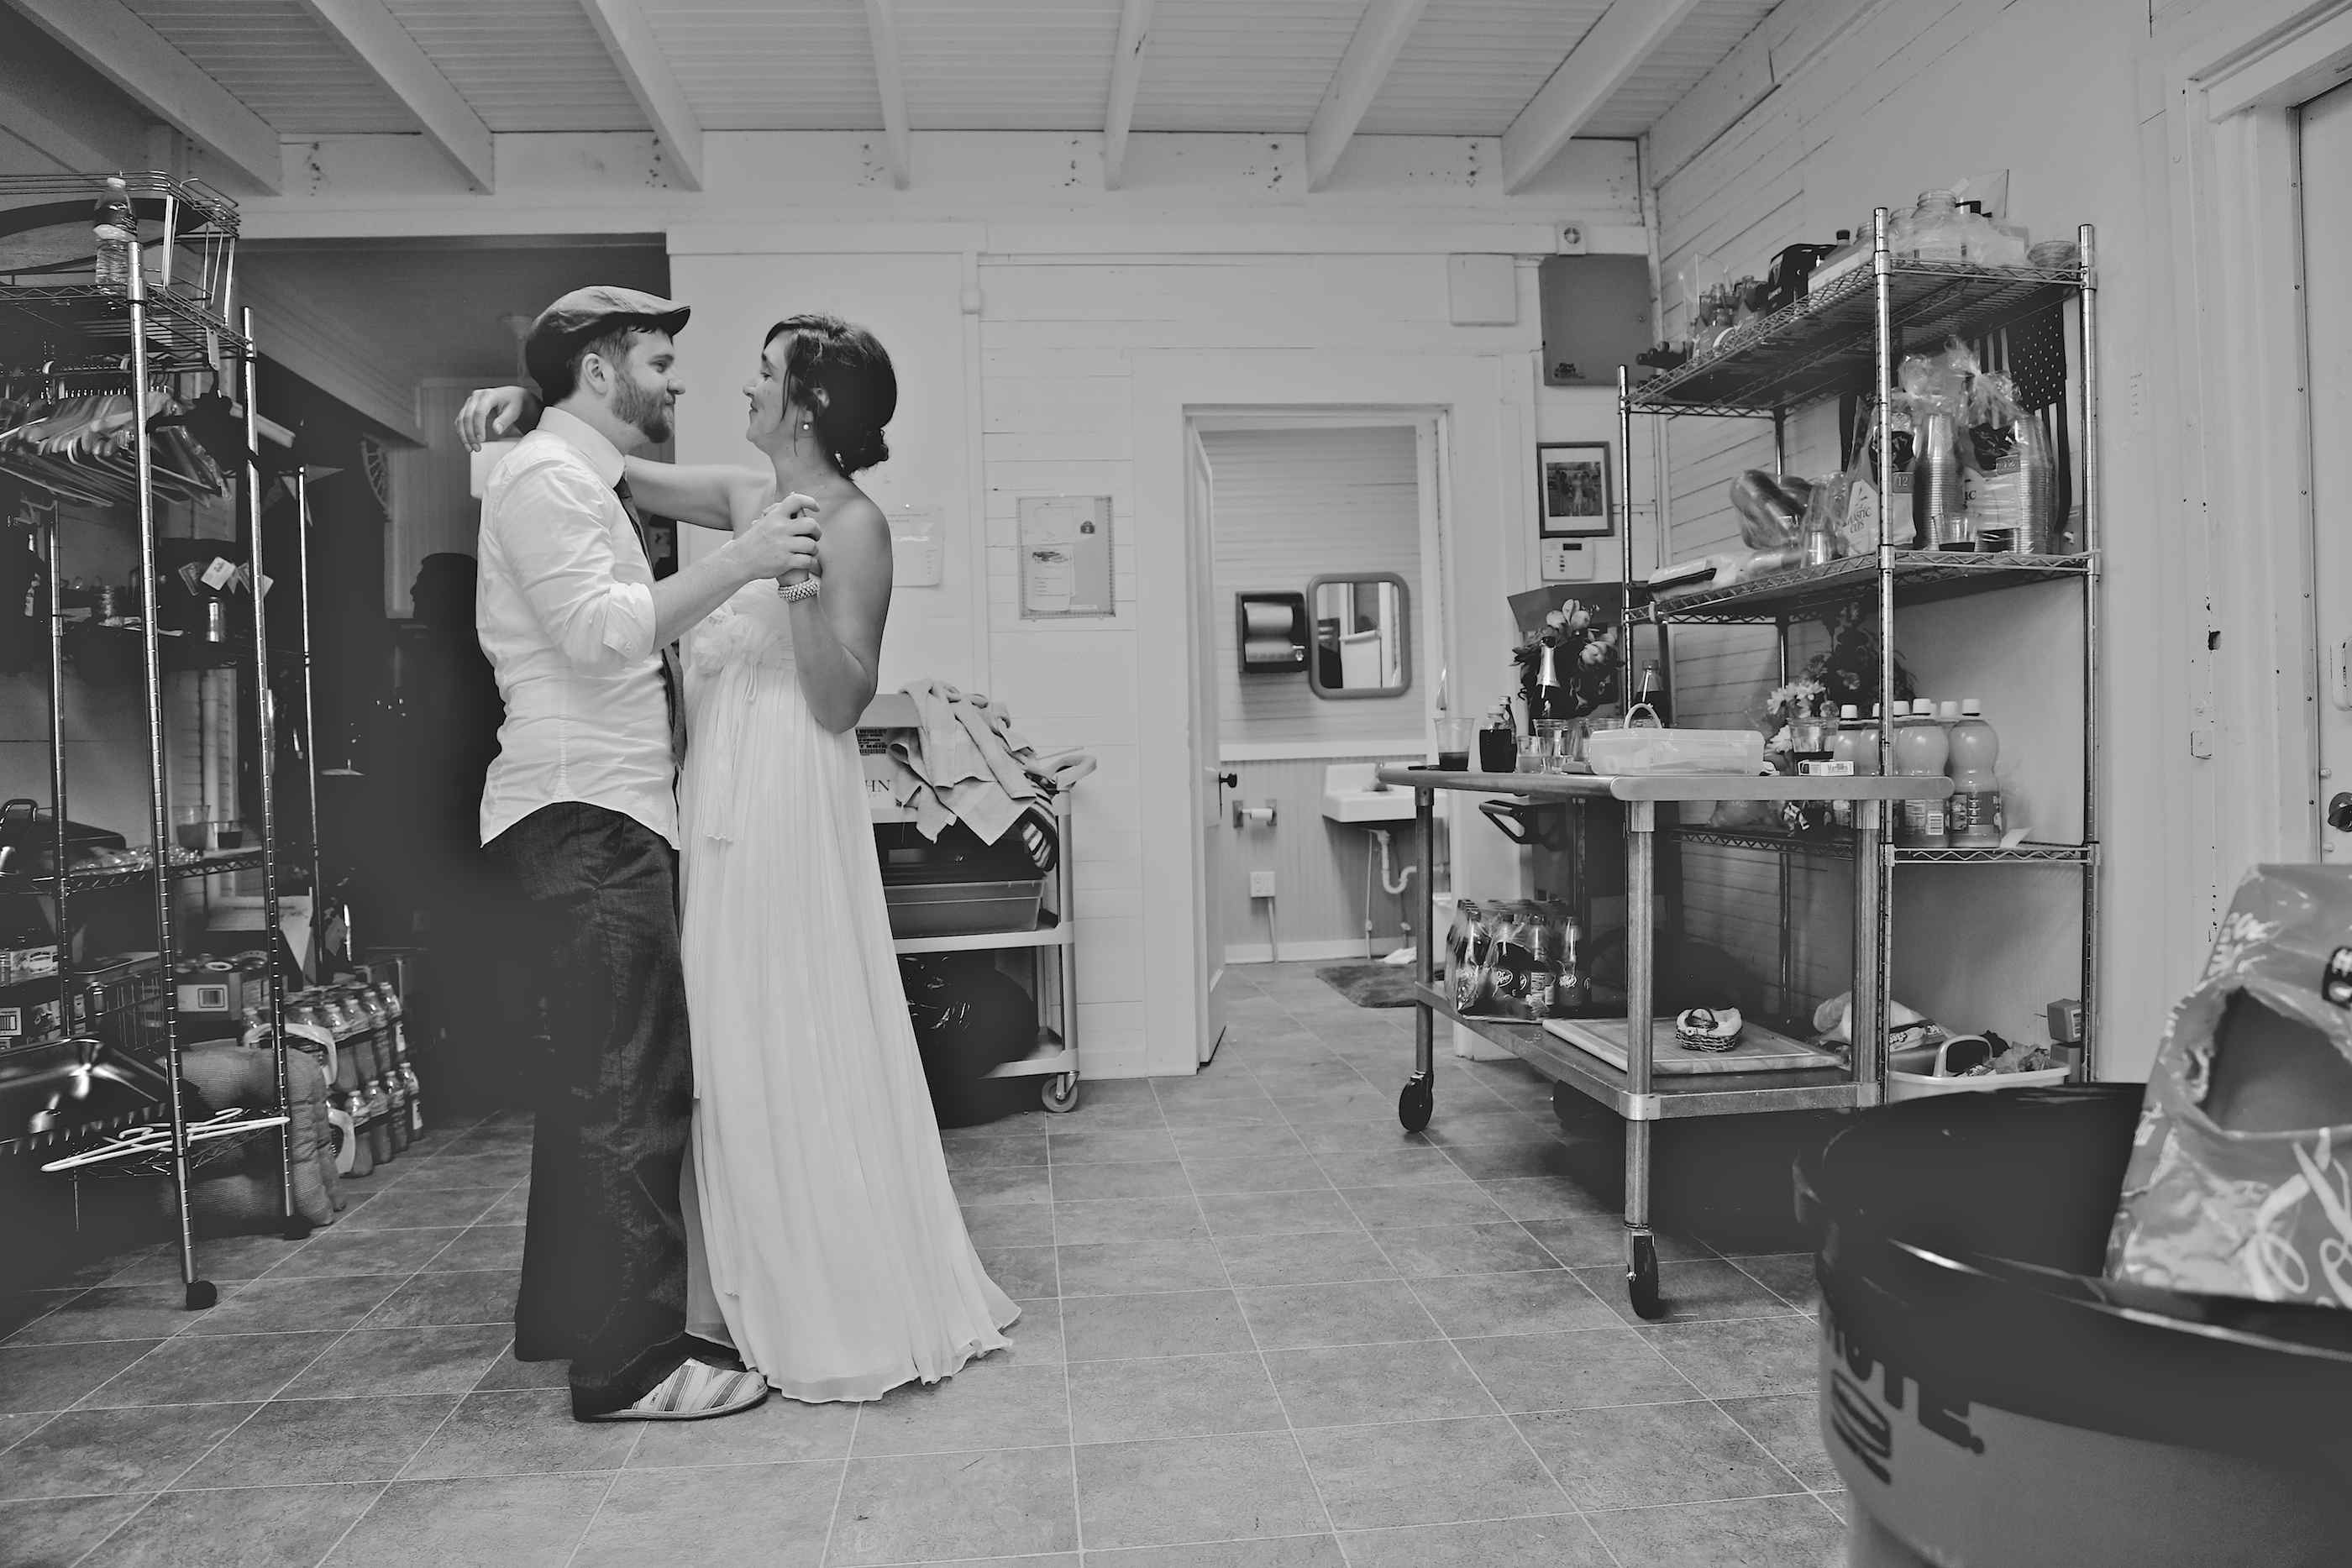 top-10-wedding-photos-2013-014